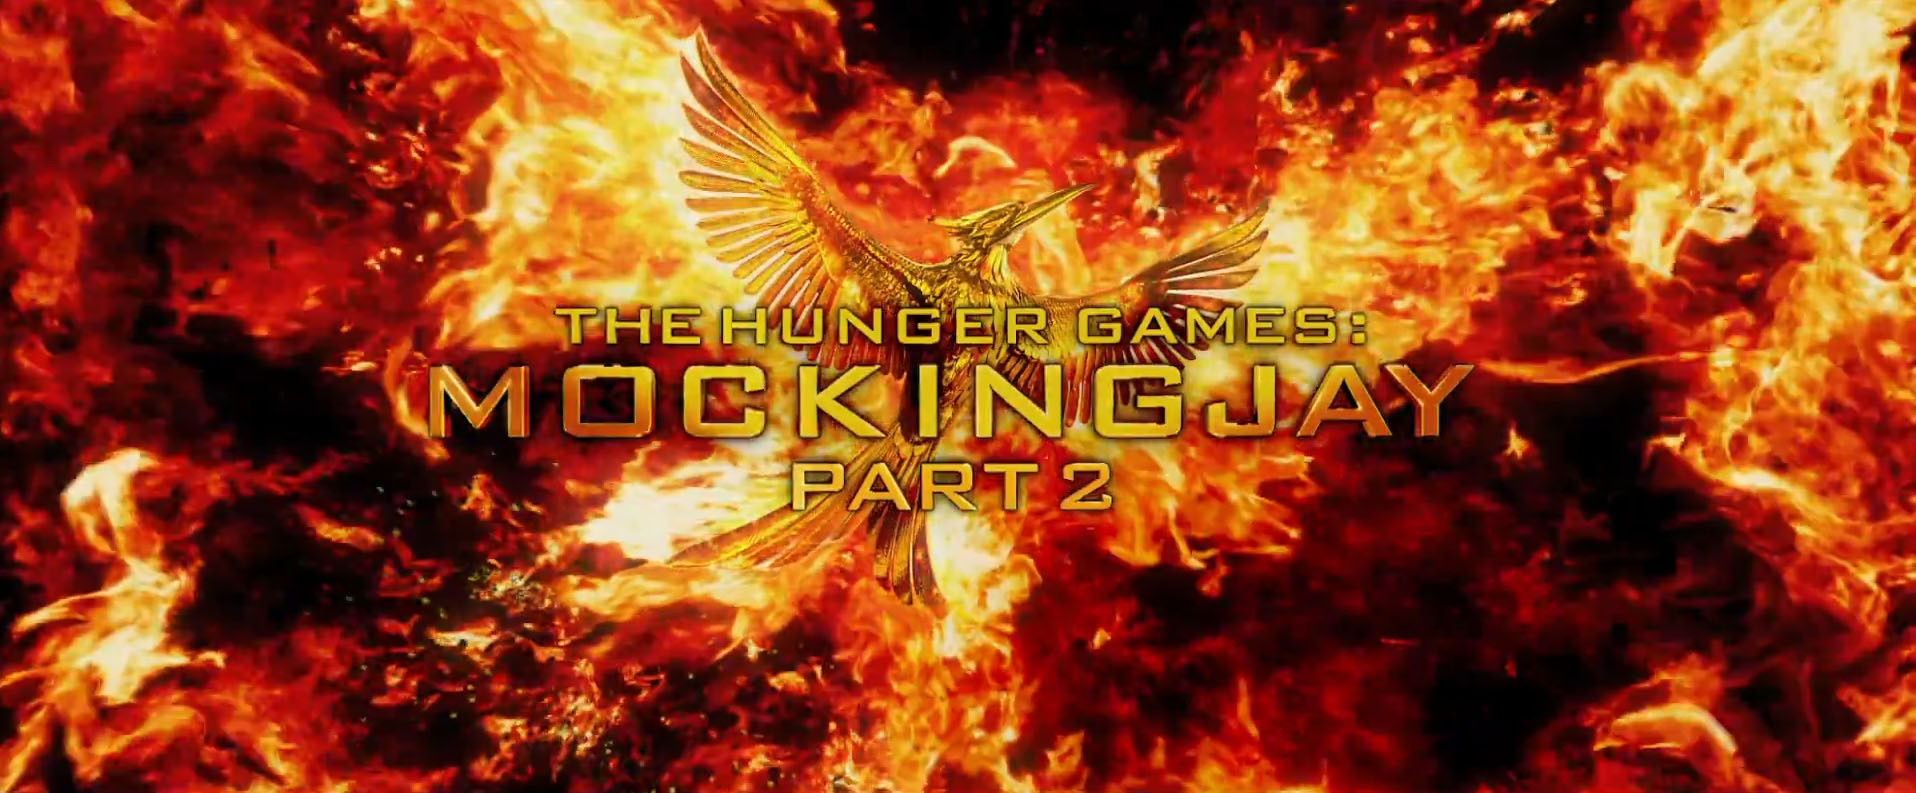 The-Hunger-Games-Mockingjay-Part-2-Logo